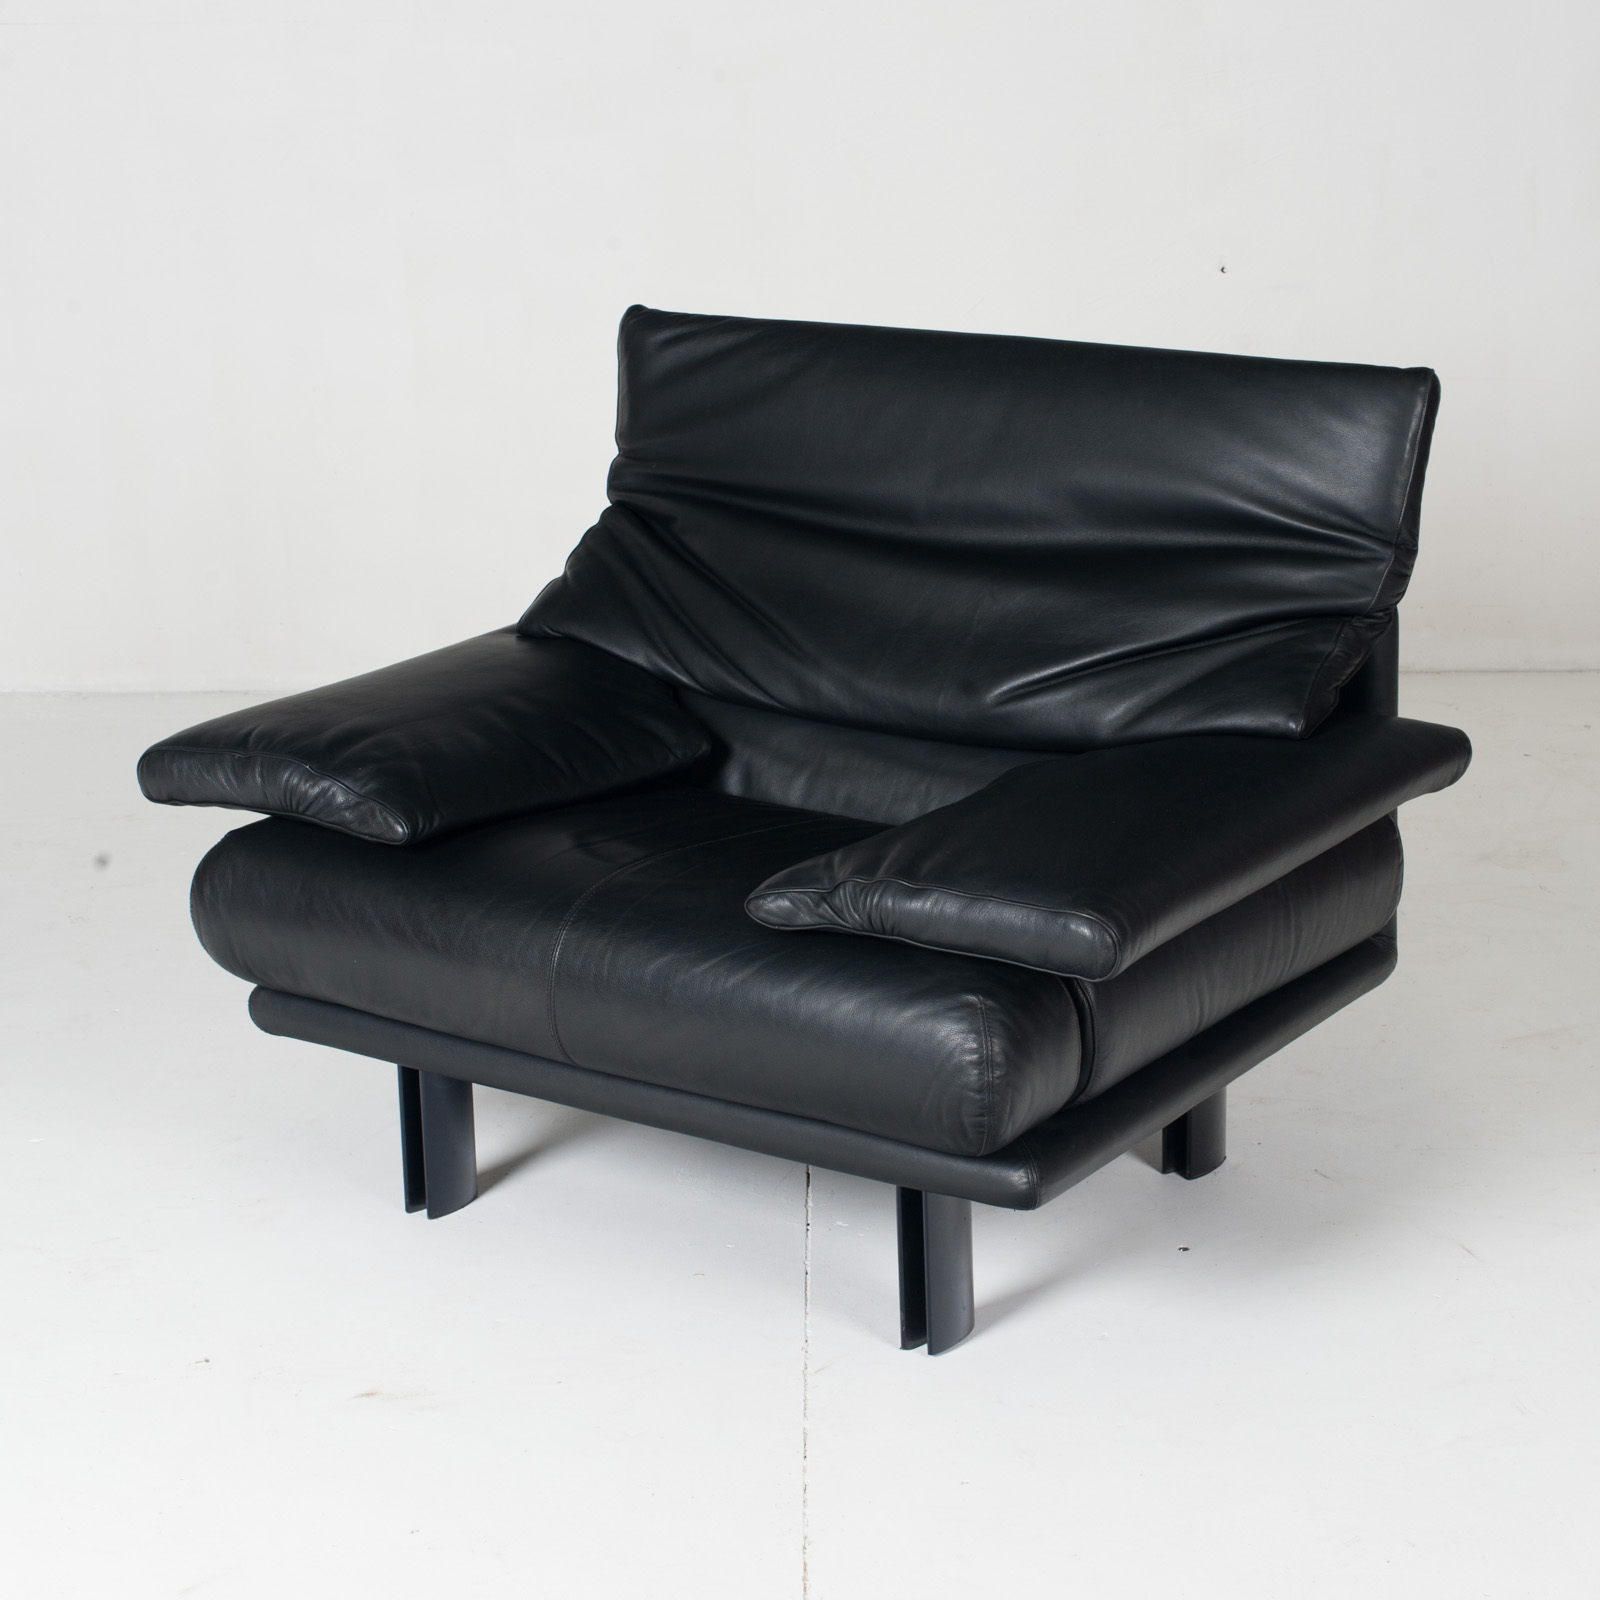 Alanda Armchair By Paolo Piva For B&b Italia In Black Leather, 1980s, Italy 6